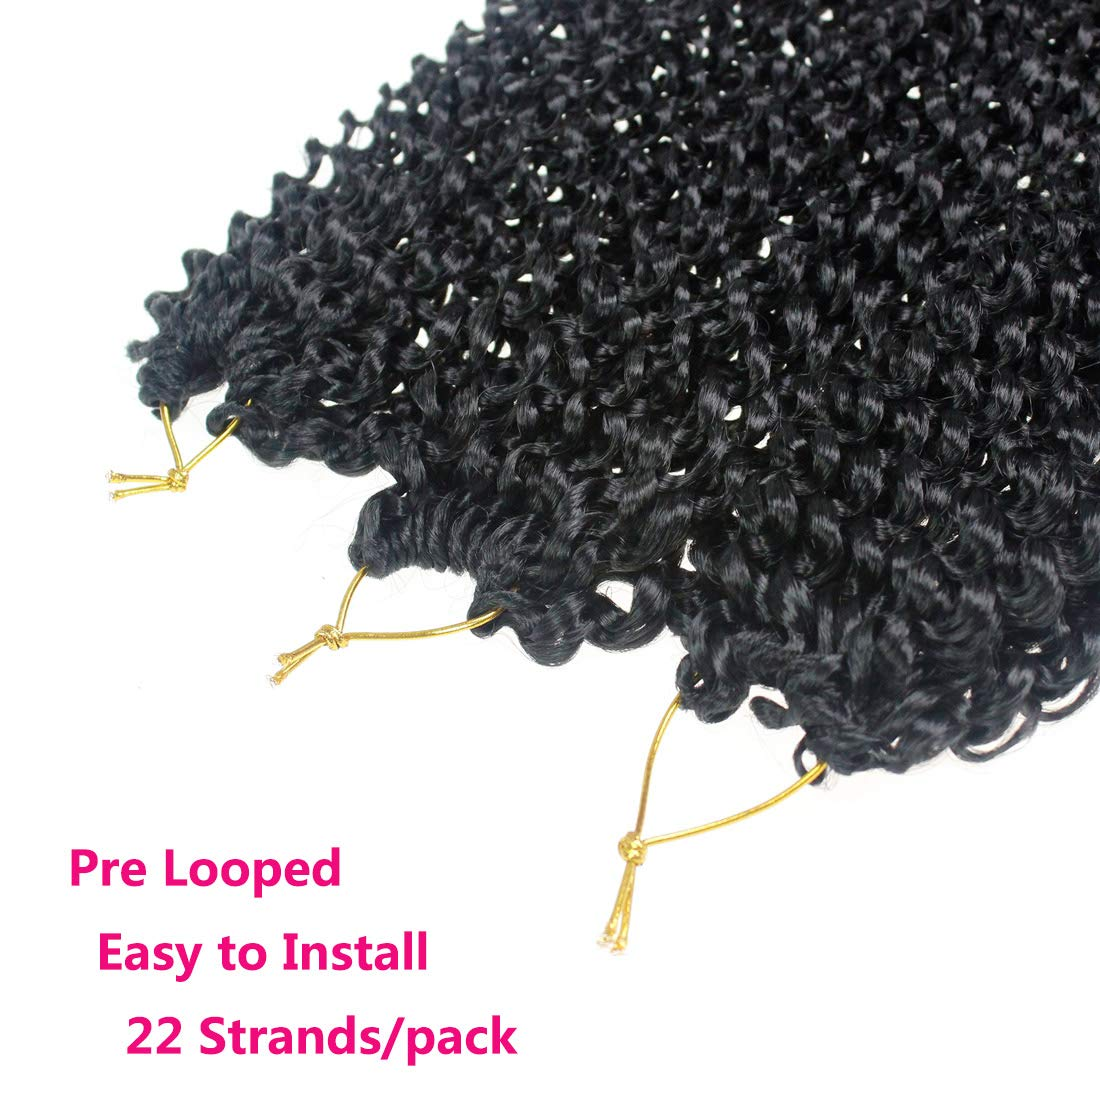 18 inch Passion Twist Crochet Hair 6 packs/lot Water Wave Crochet Braiding Hair Long Bohemian Hair for Passion Twist Pre Looped Synthetic Natural Hair Extensions Soft Lightweight (1B#)